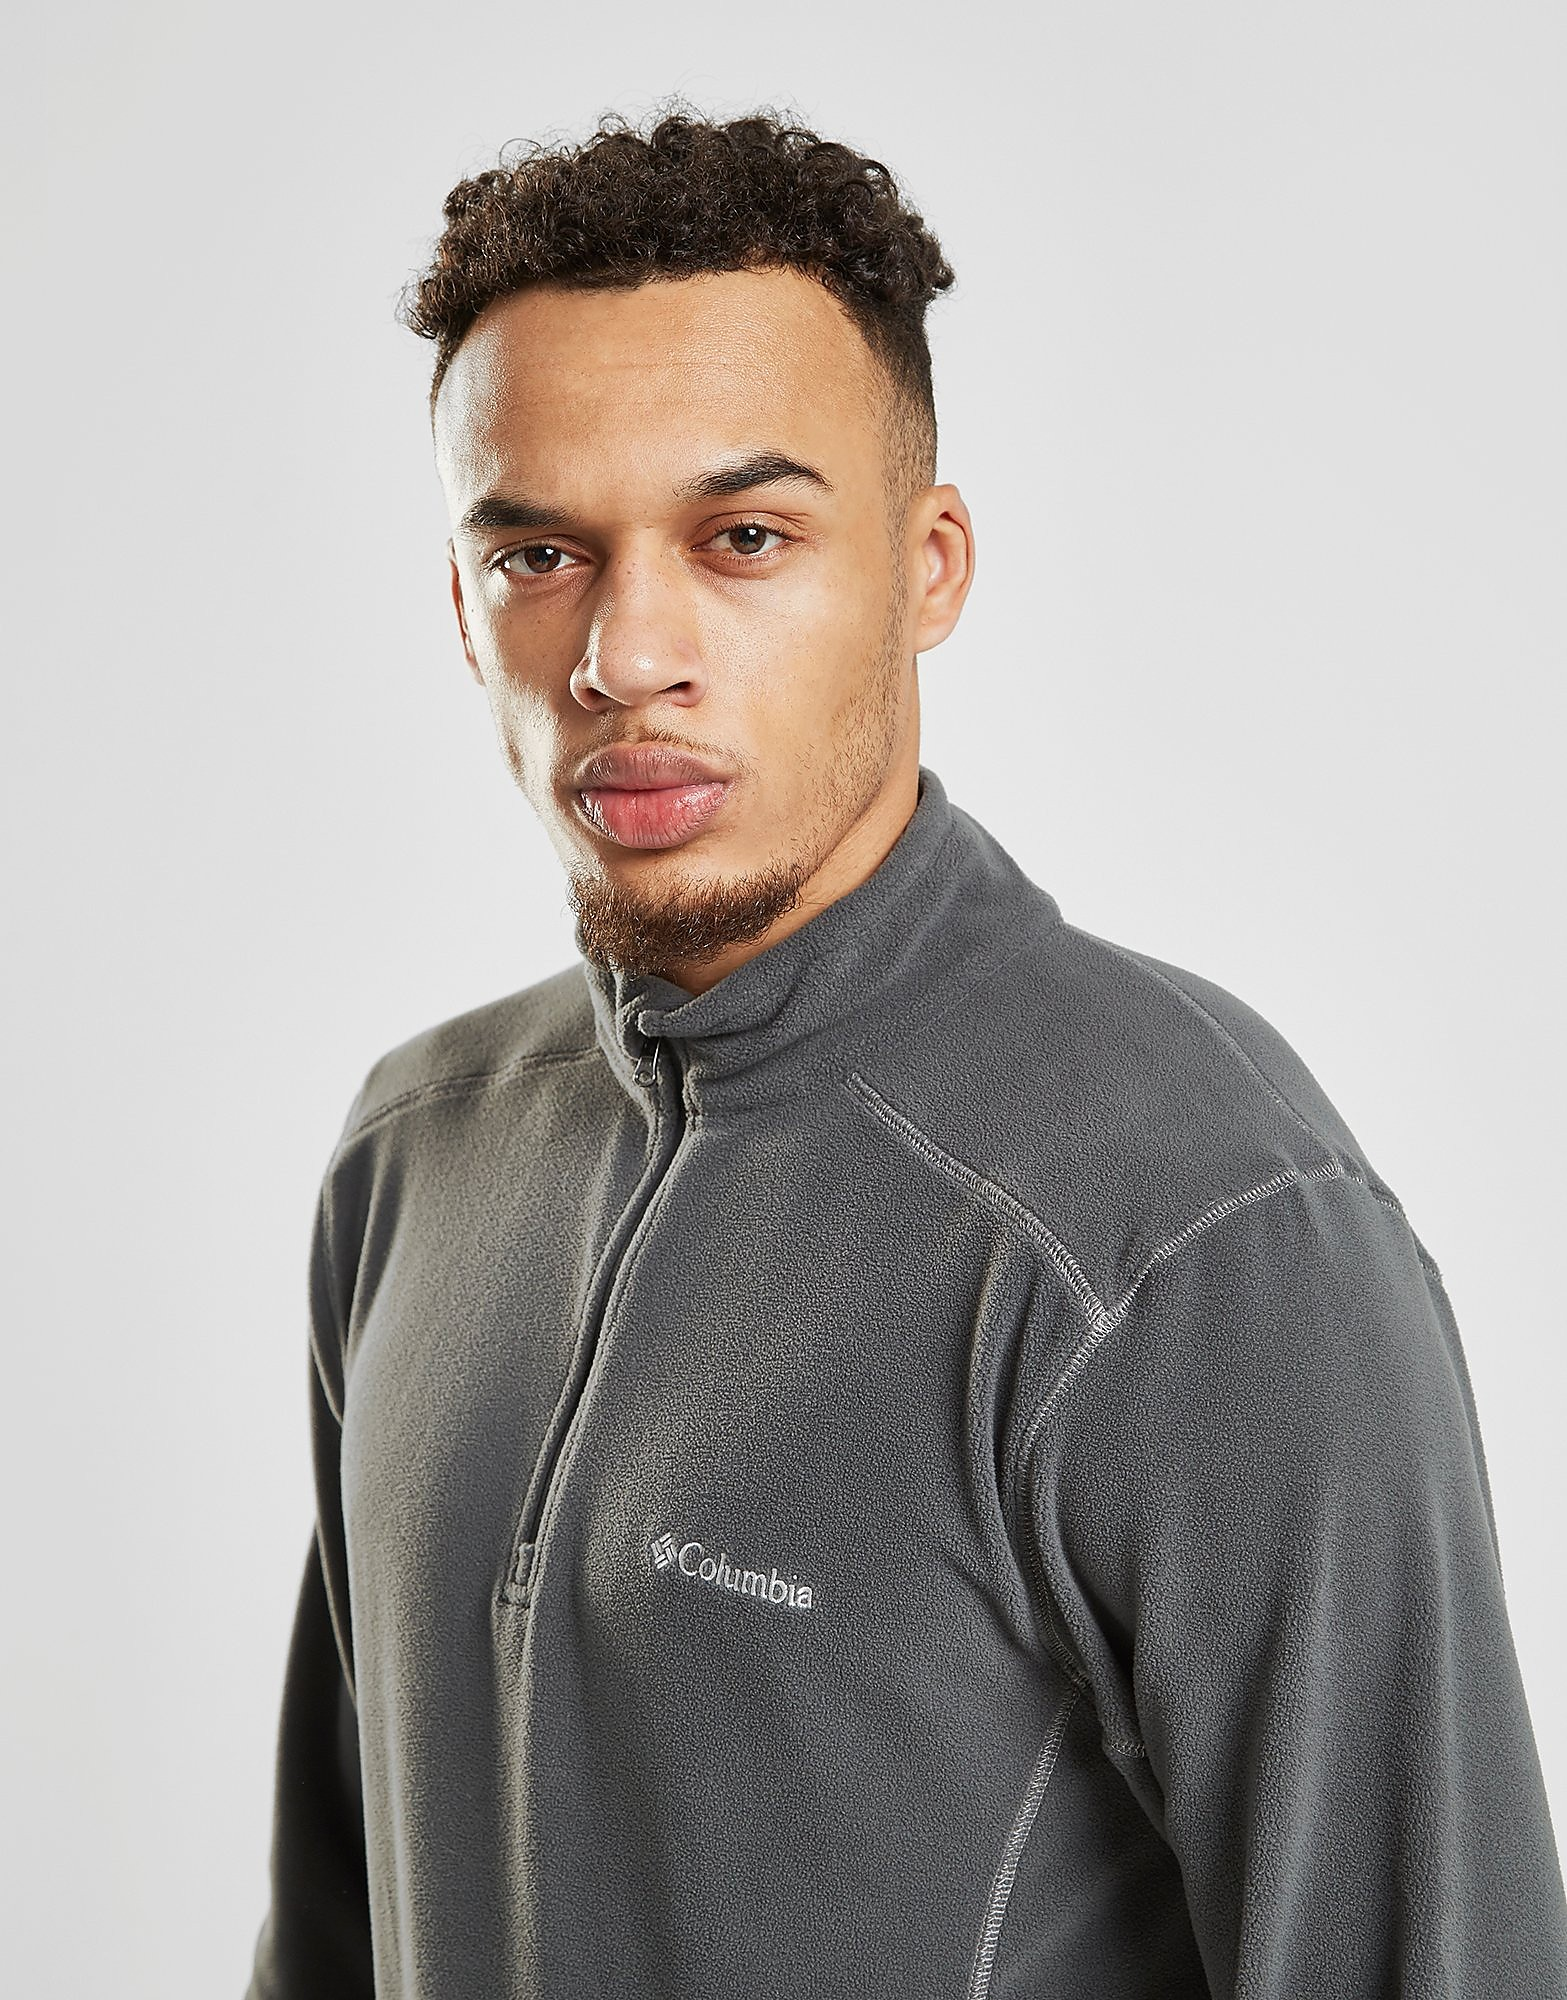 Columbia 1/4 Zip Micro Fleece Top Heren - Grijs - Heren